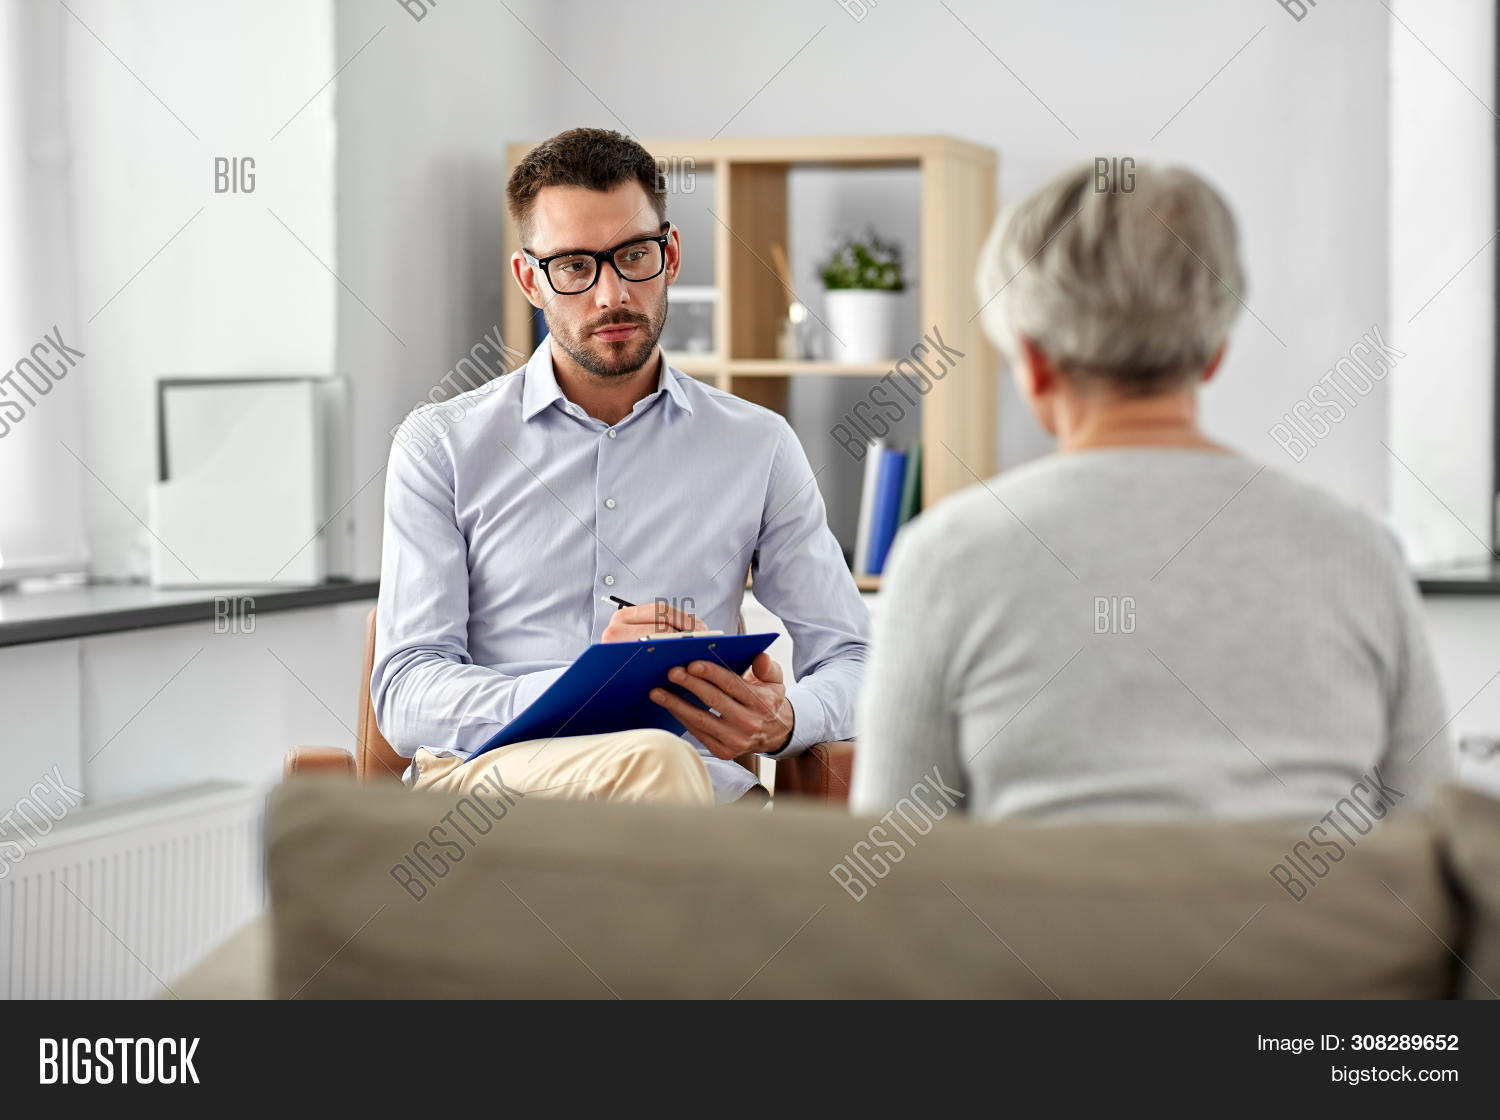 geriatric psychology, mental therapy and old age concept - psychologist with clipboard taking notes and listening to senior woman patient at psychotherapy session